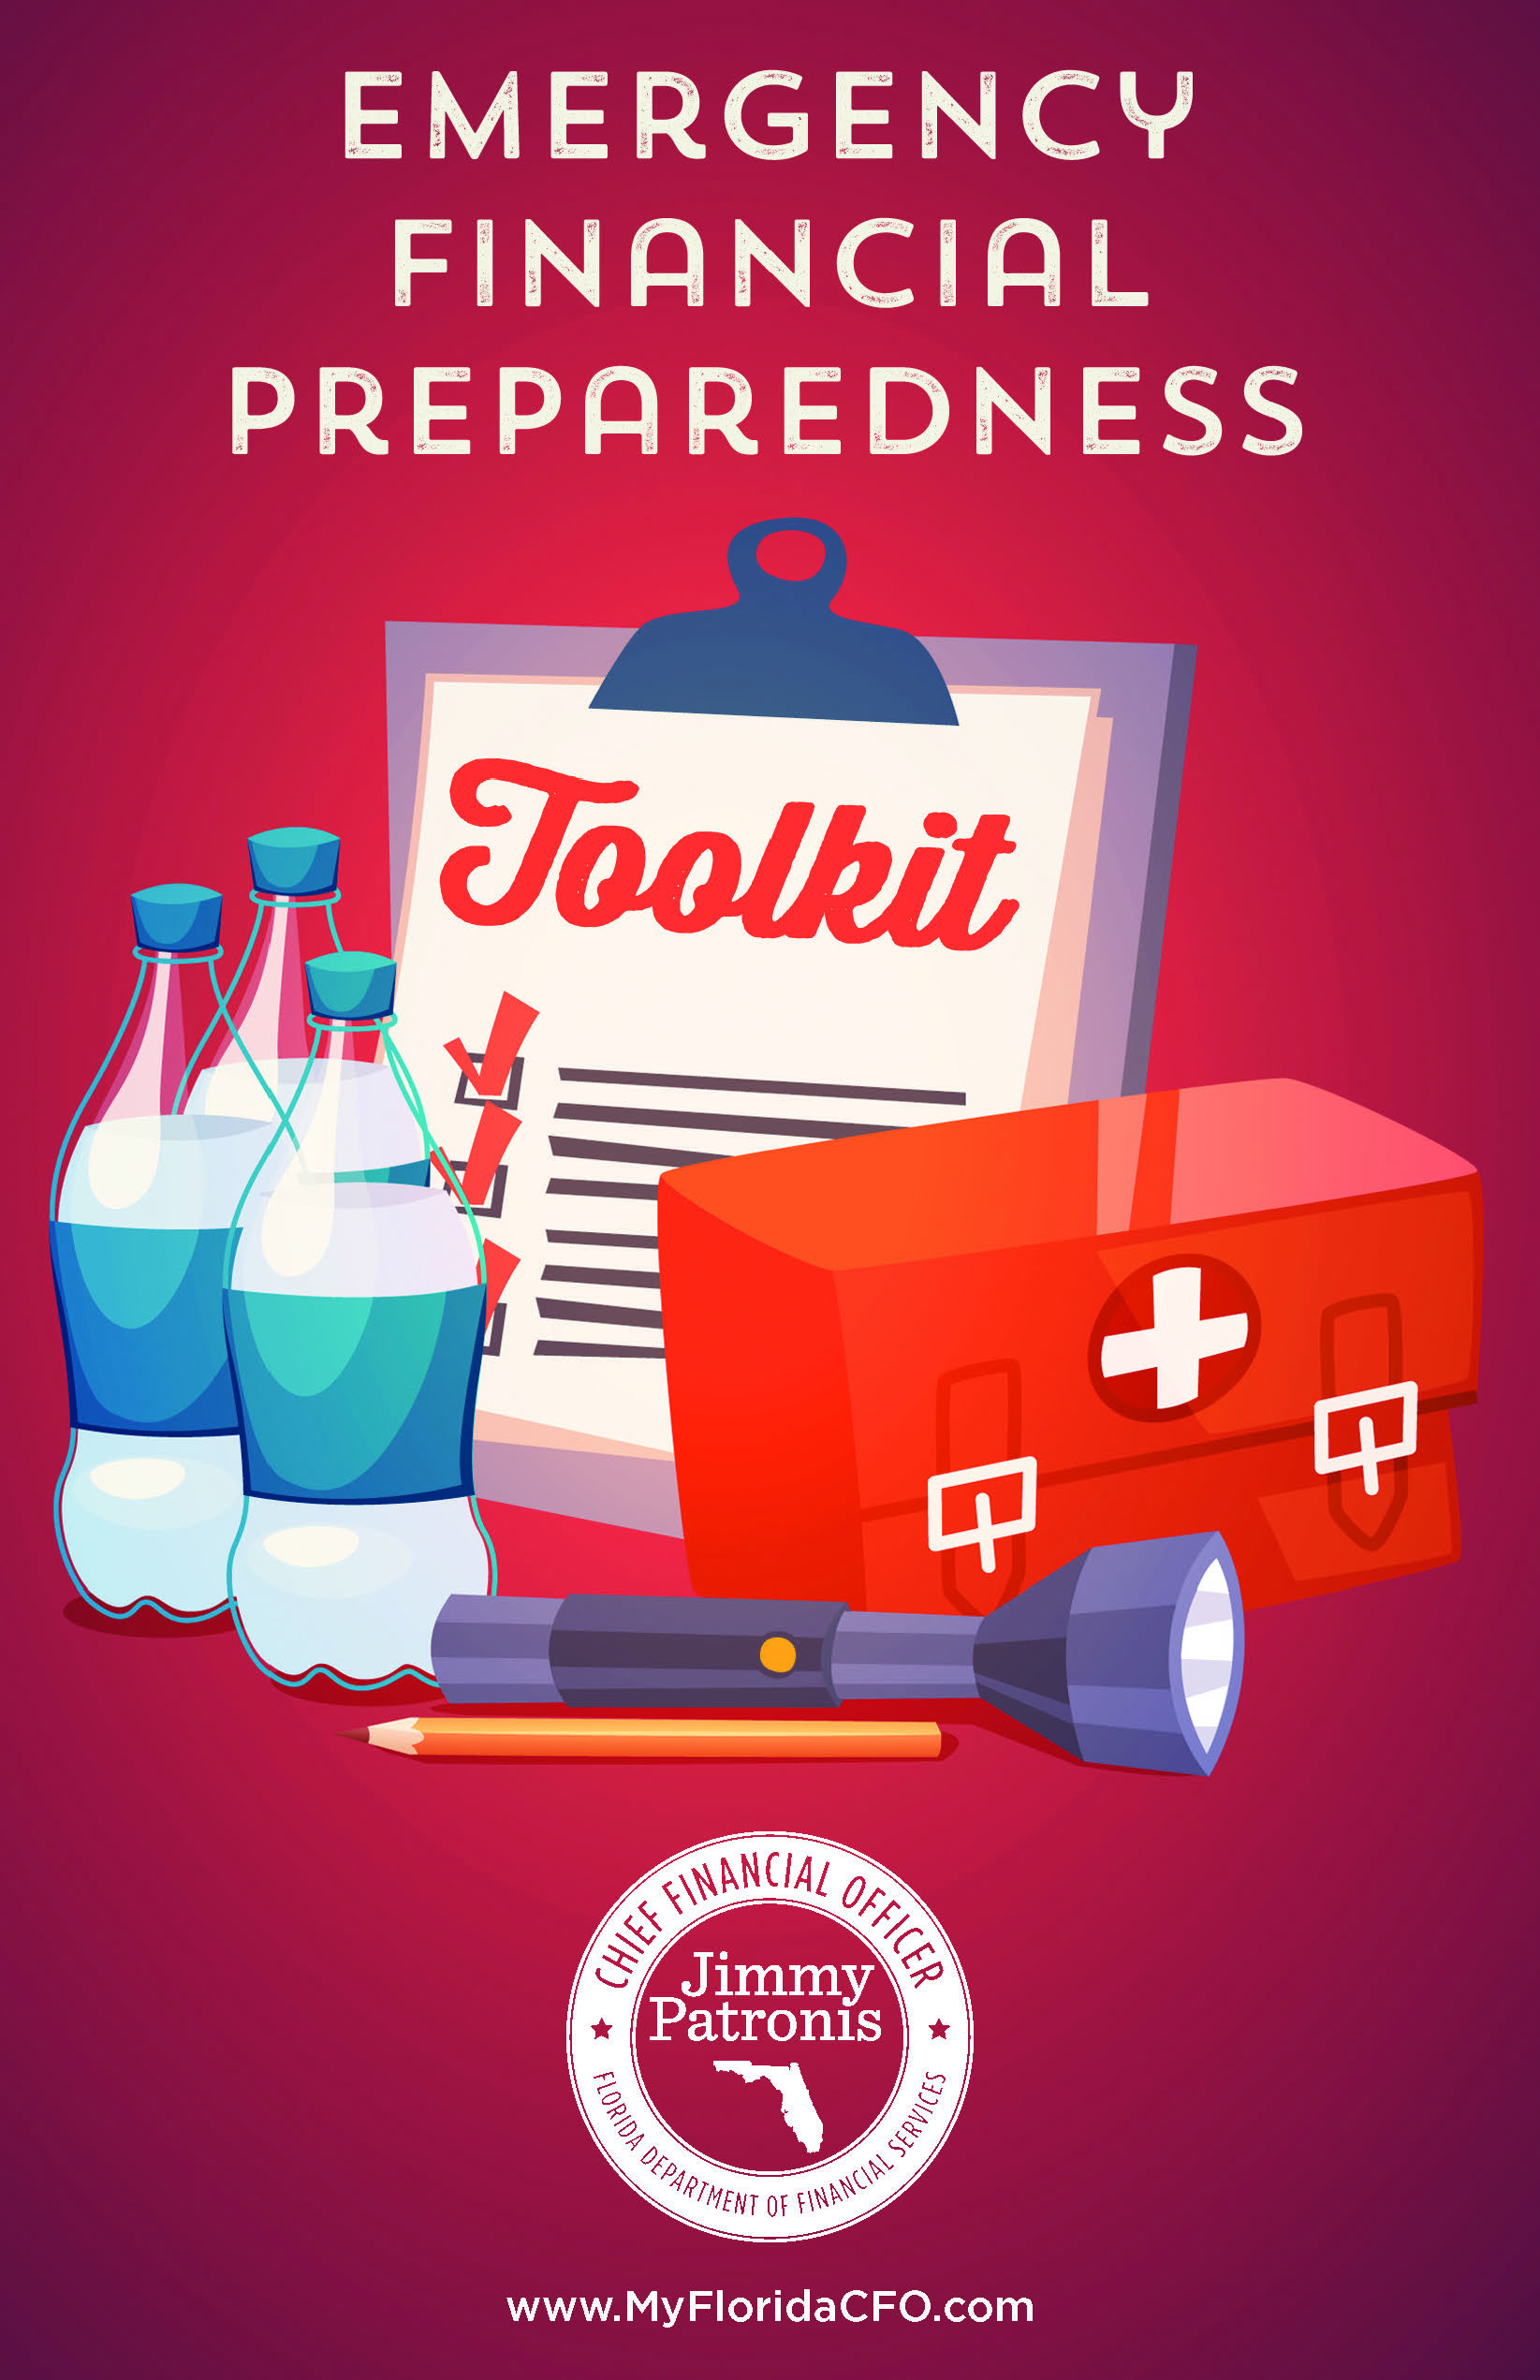 Graphic representing the emergency Financial Preparedness Toolkit from the MyFloridaCFO.com page.